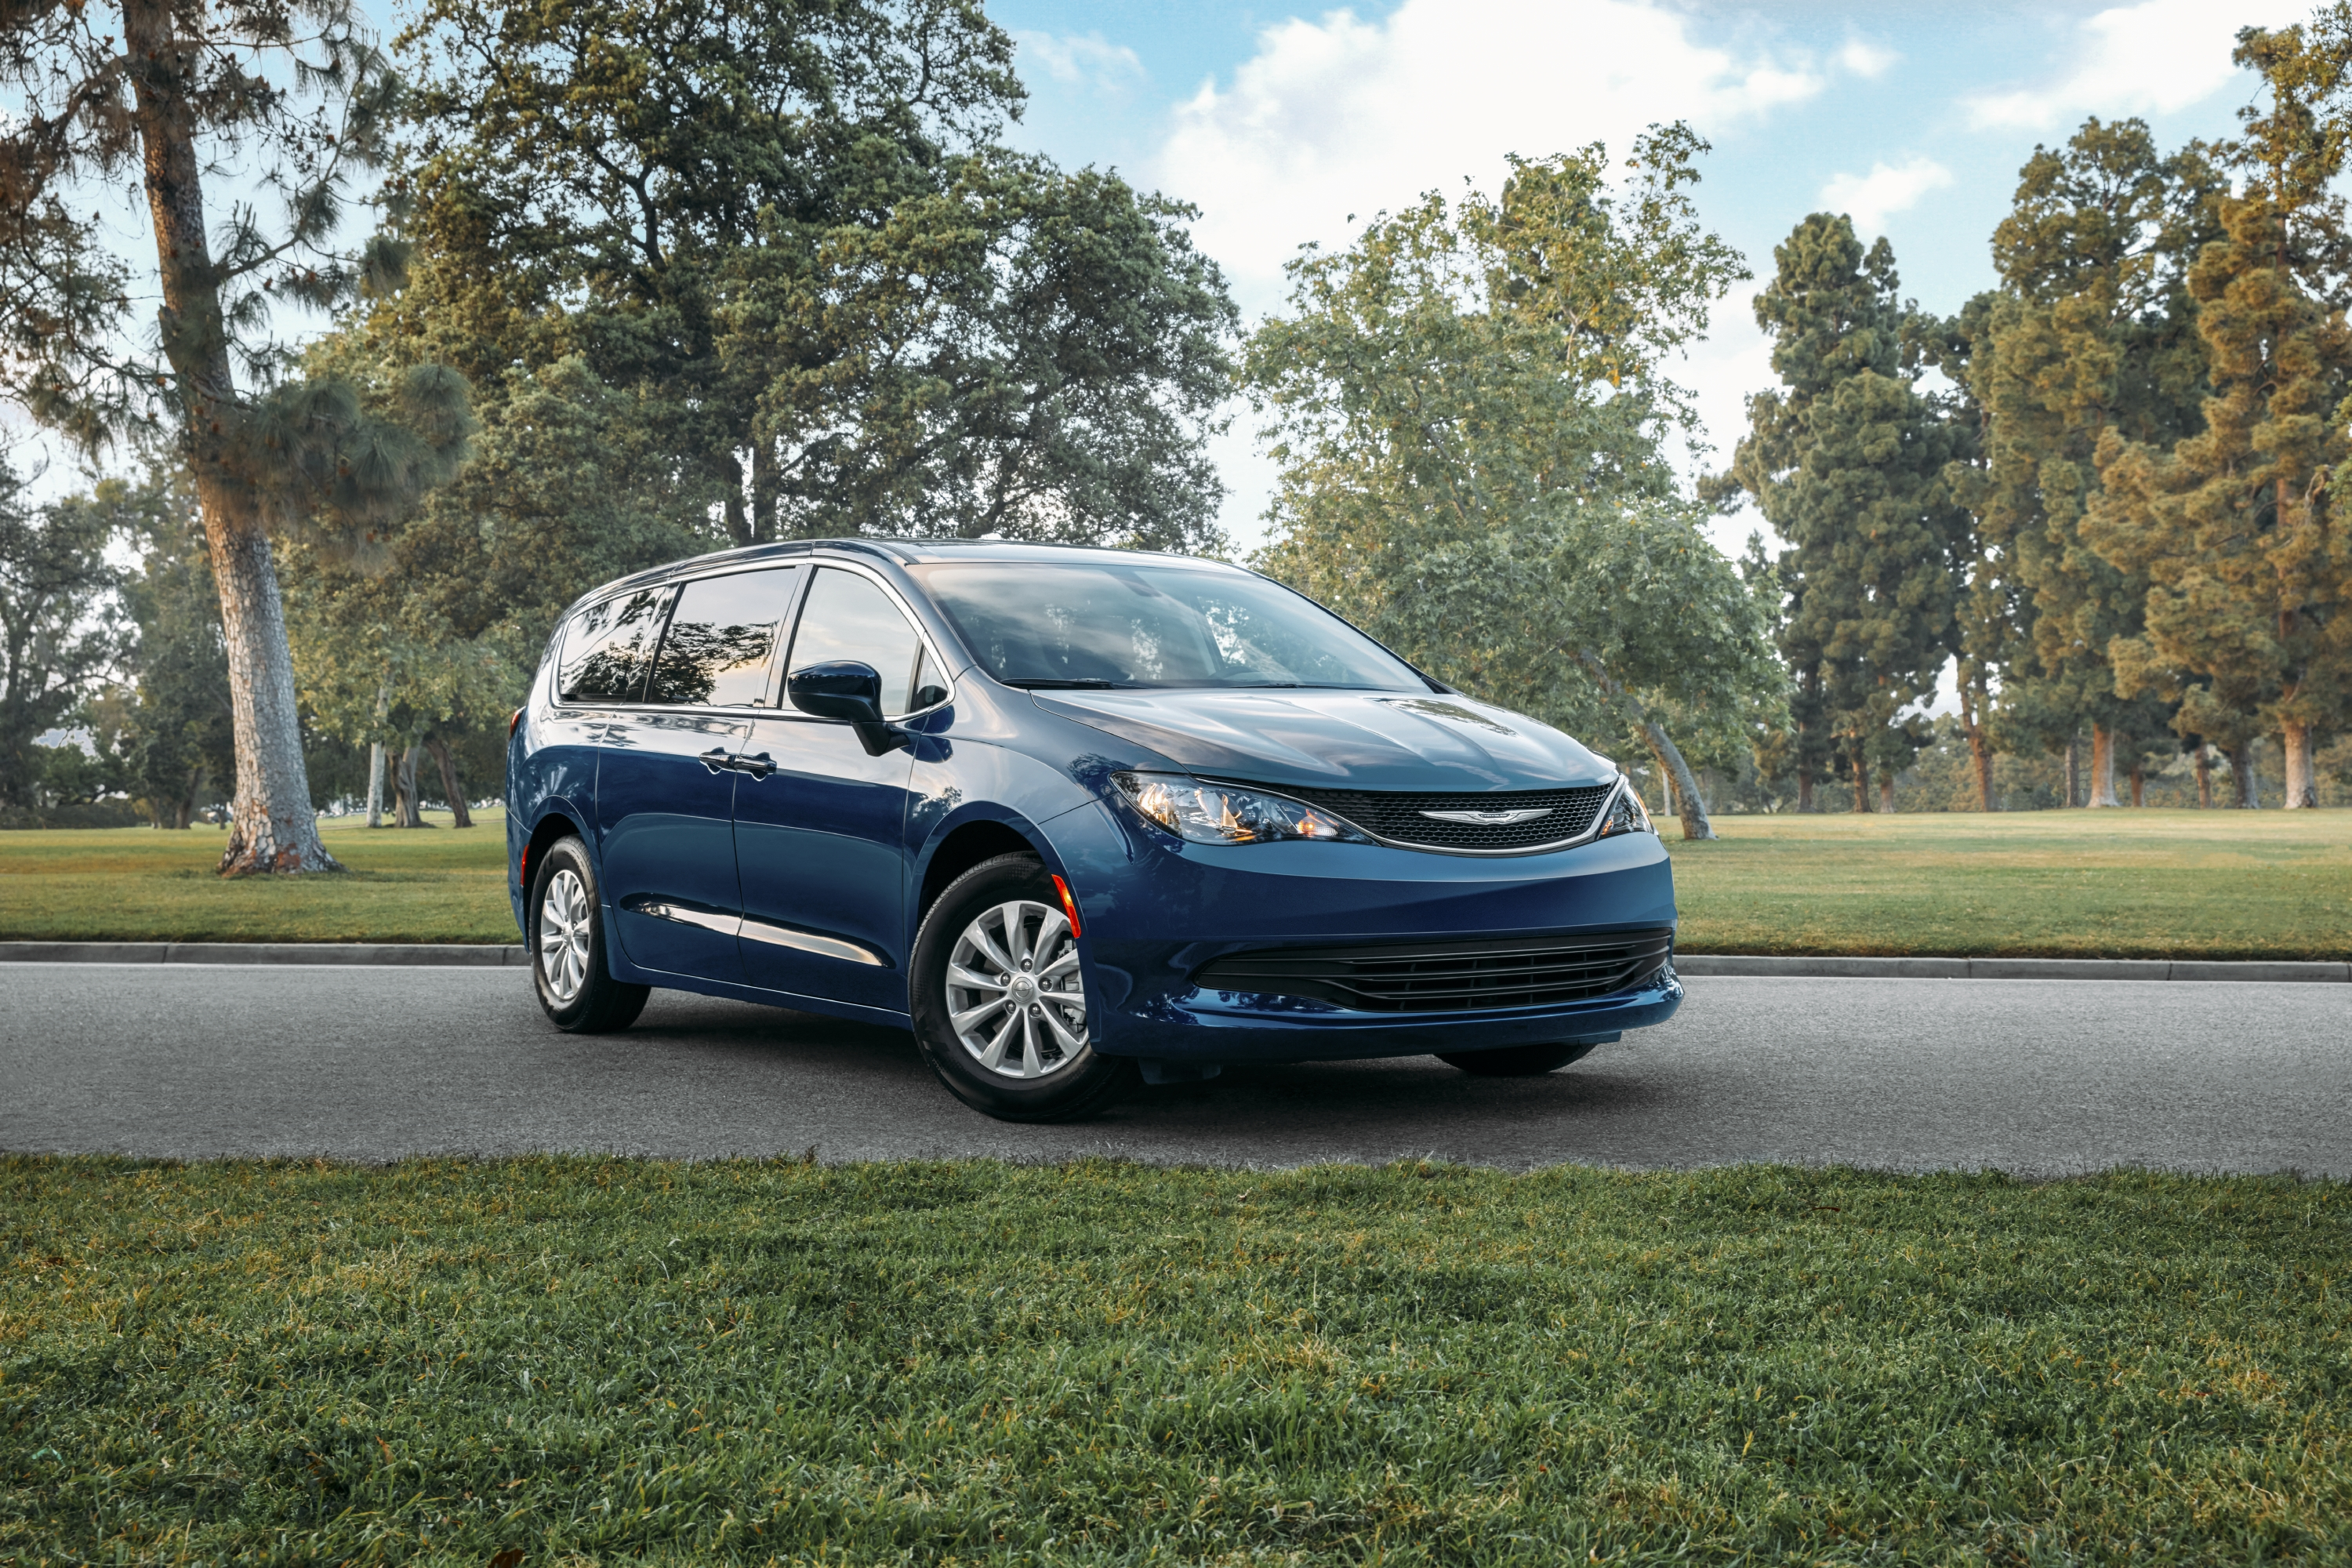 Chrysler Voyager Van Snags Five-Star NHTSA Rating